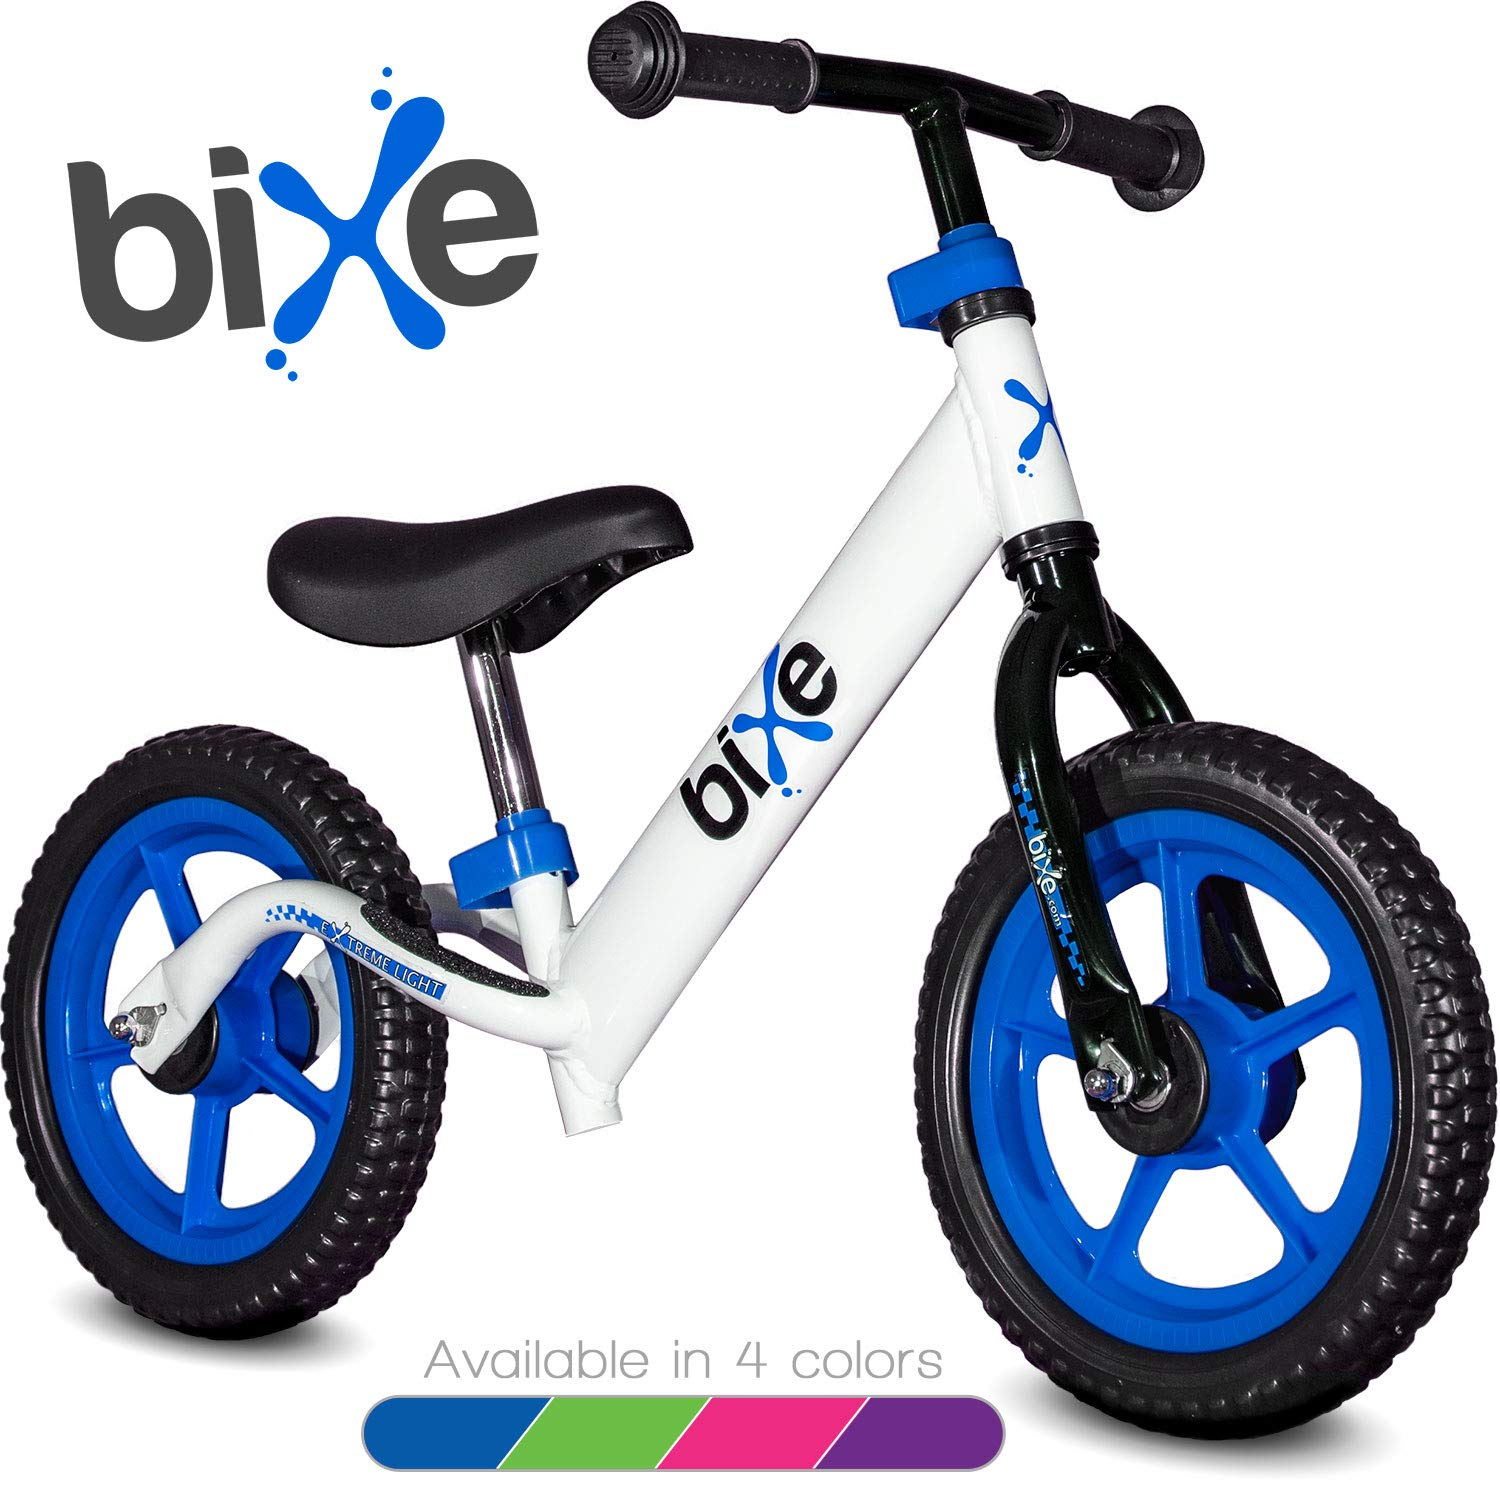 Top 11 Best Balance Bikes for Toddlers (2019 Reviews) 5